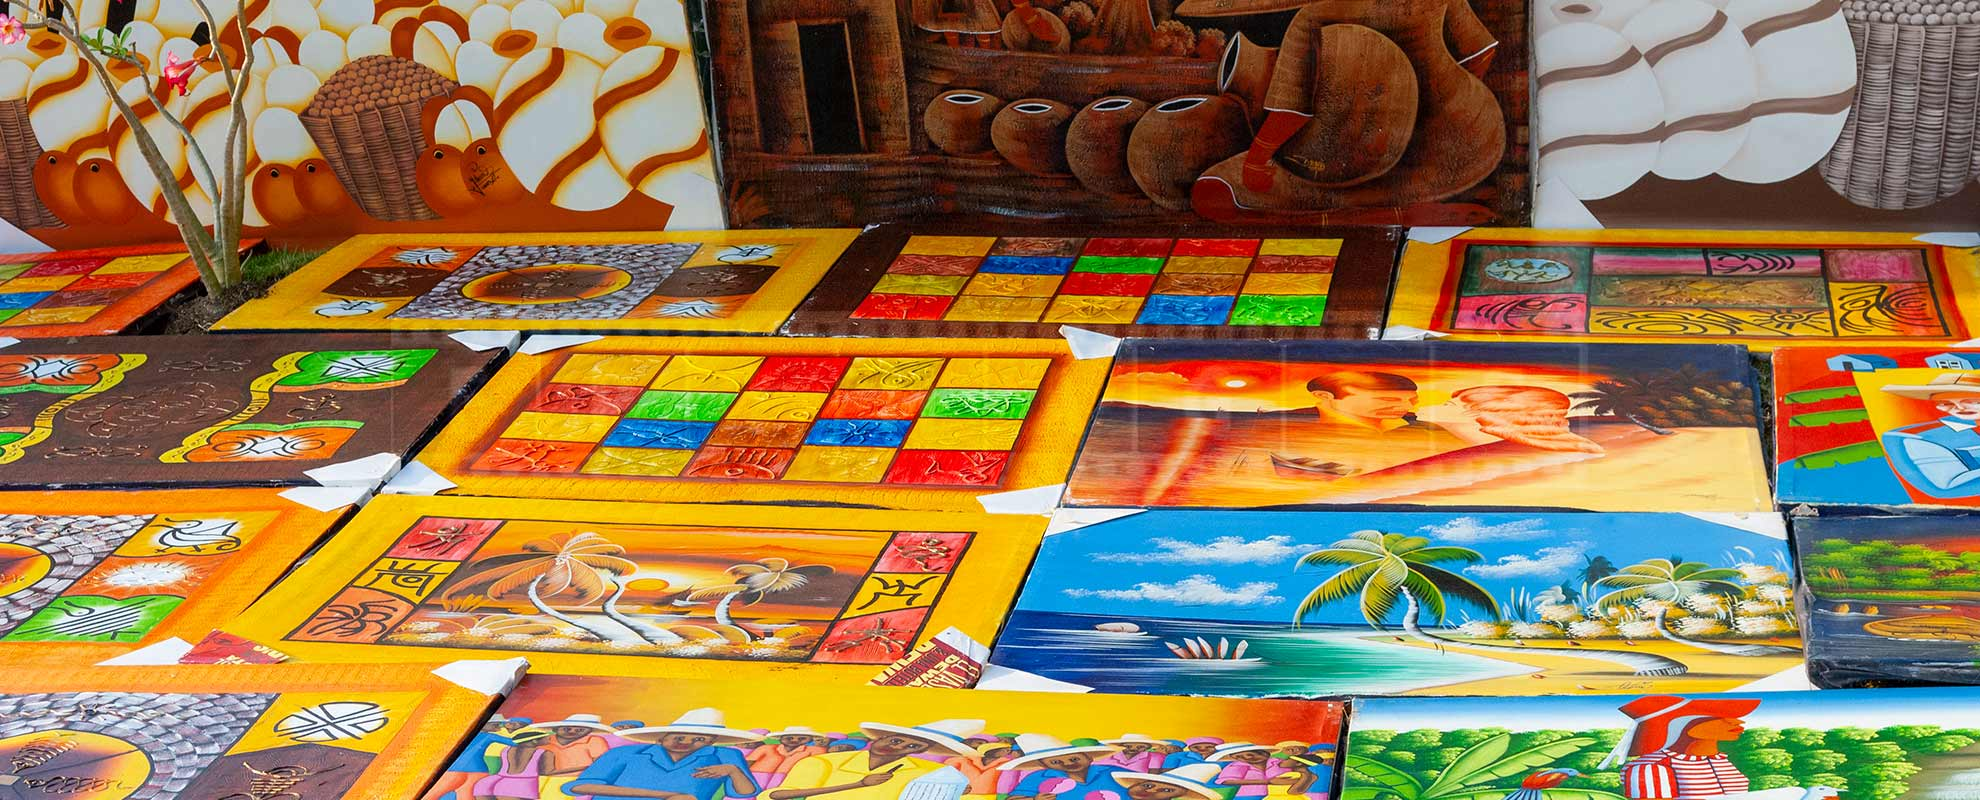 bright and colorful paintings at Dominican beach market